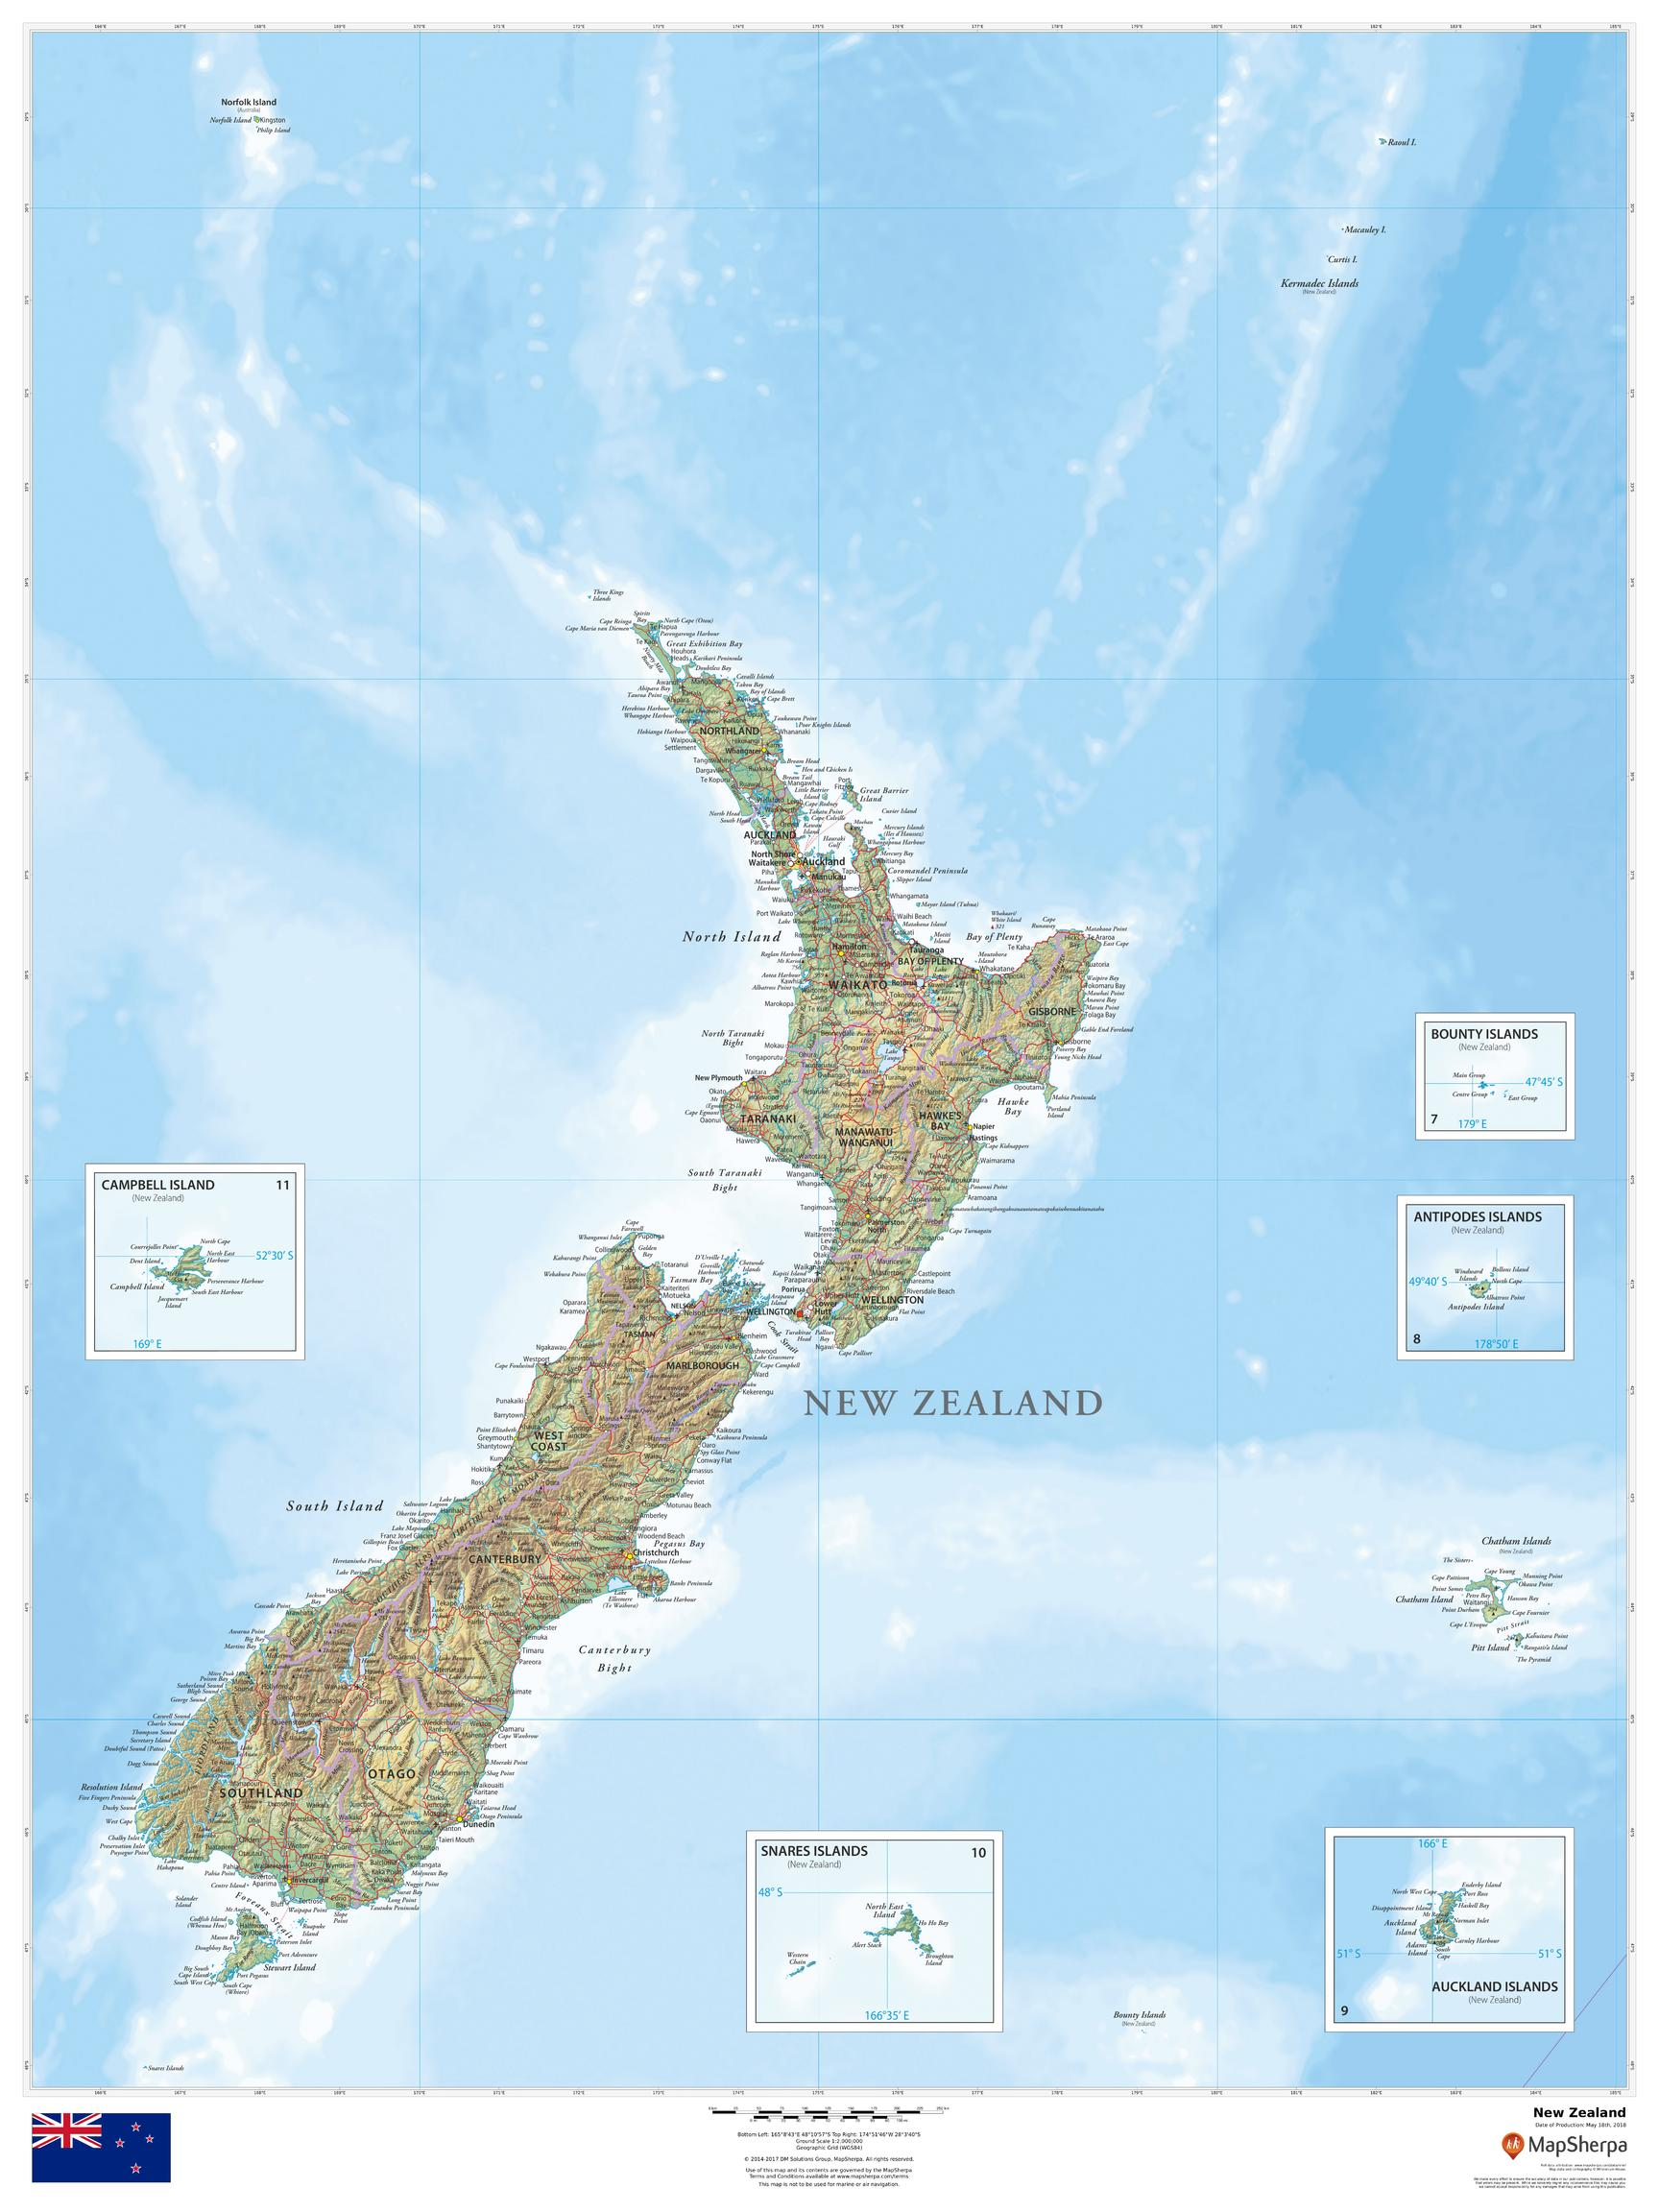 Show Map Of New Zealand.New Zealand